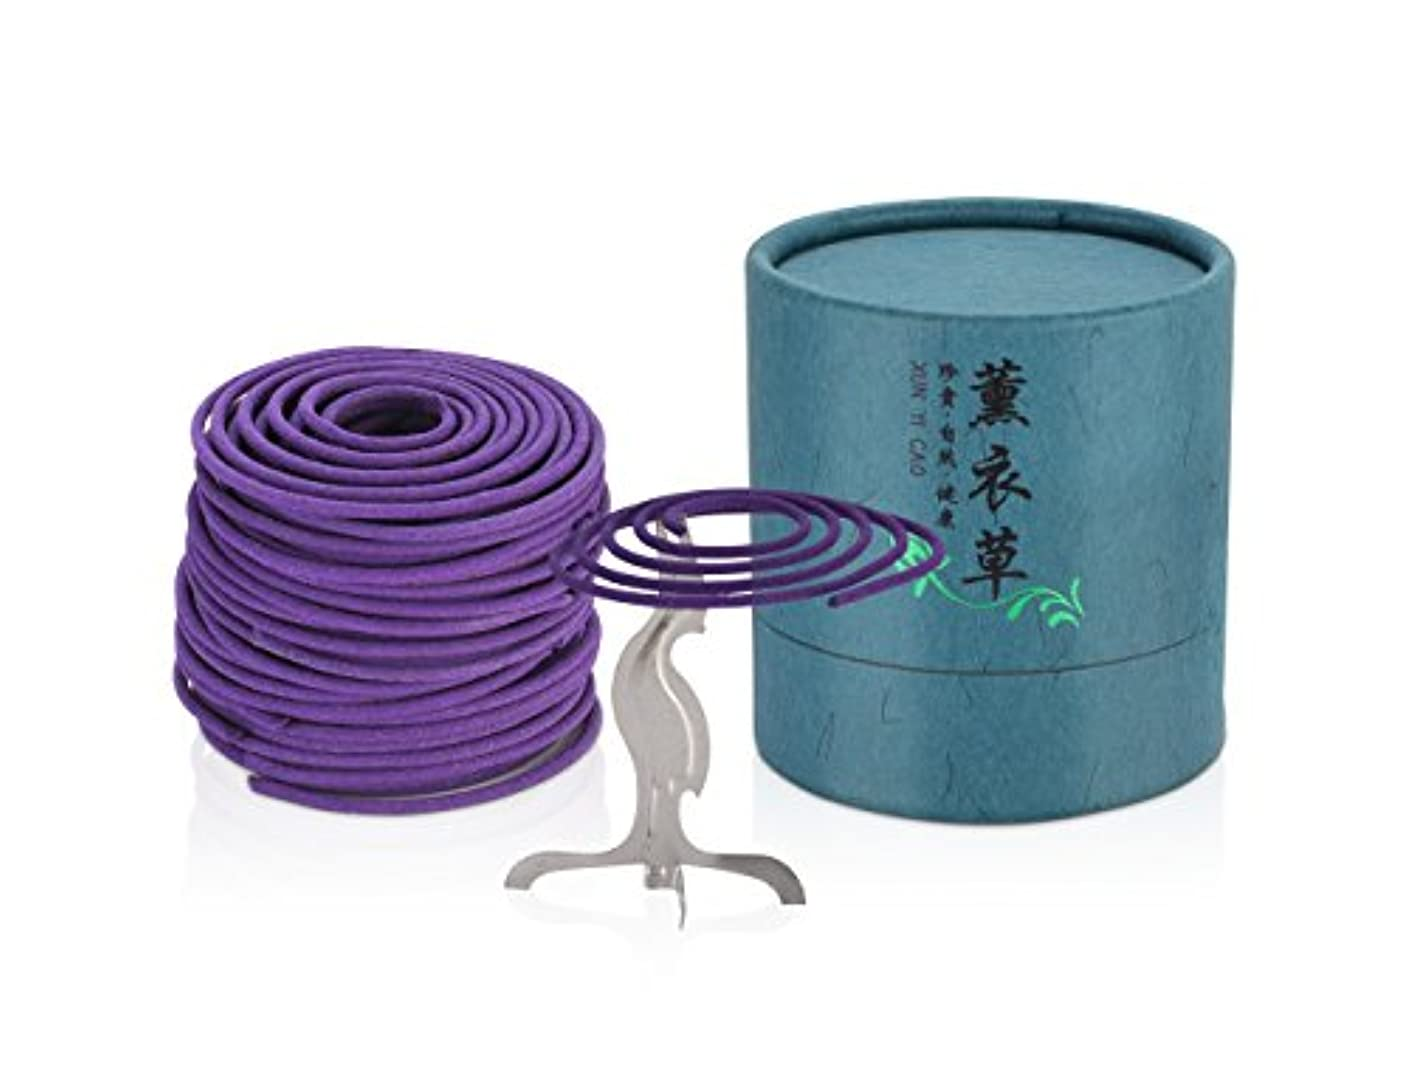 ウォルターカニンガムアジア人慢(Lavender) - Xujia Lavender Incense Coils,Zen Buddhist Coils Incense for Burner